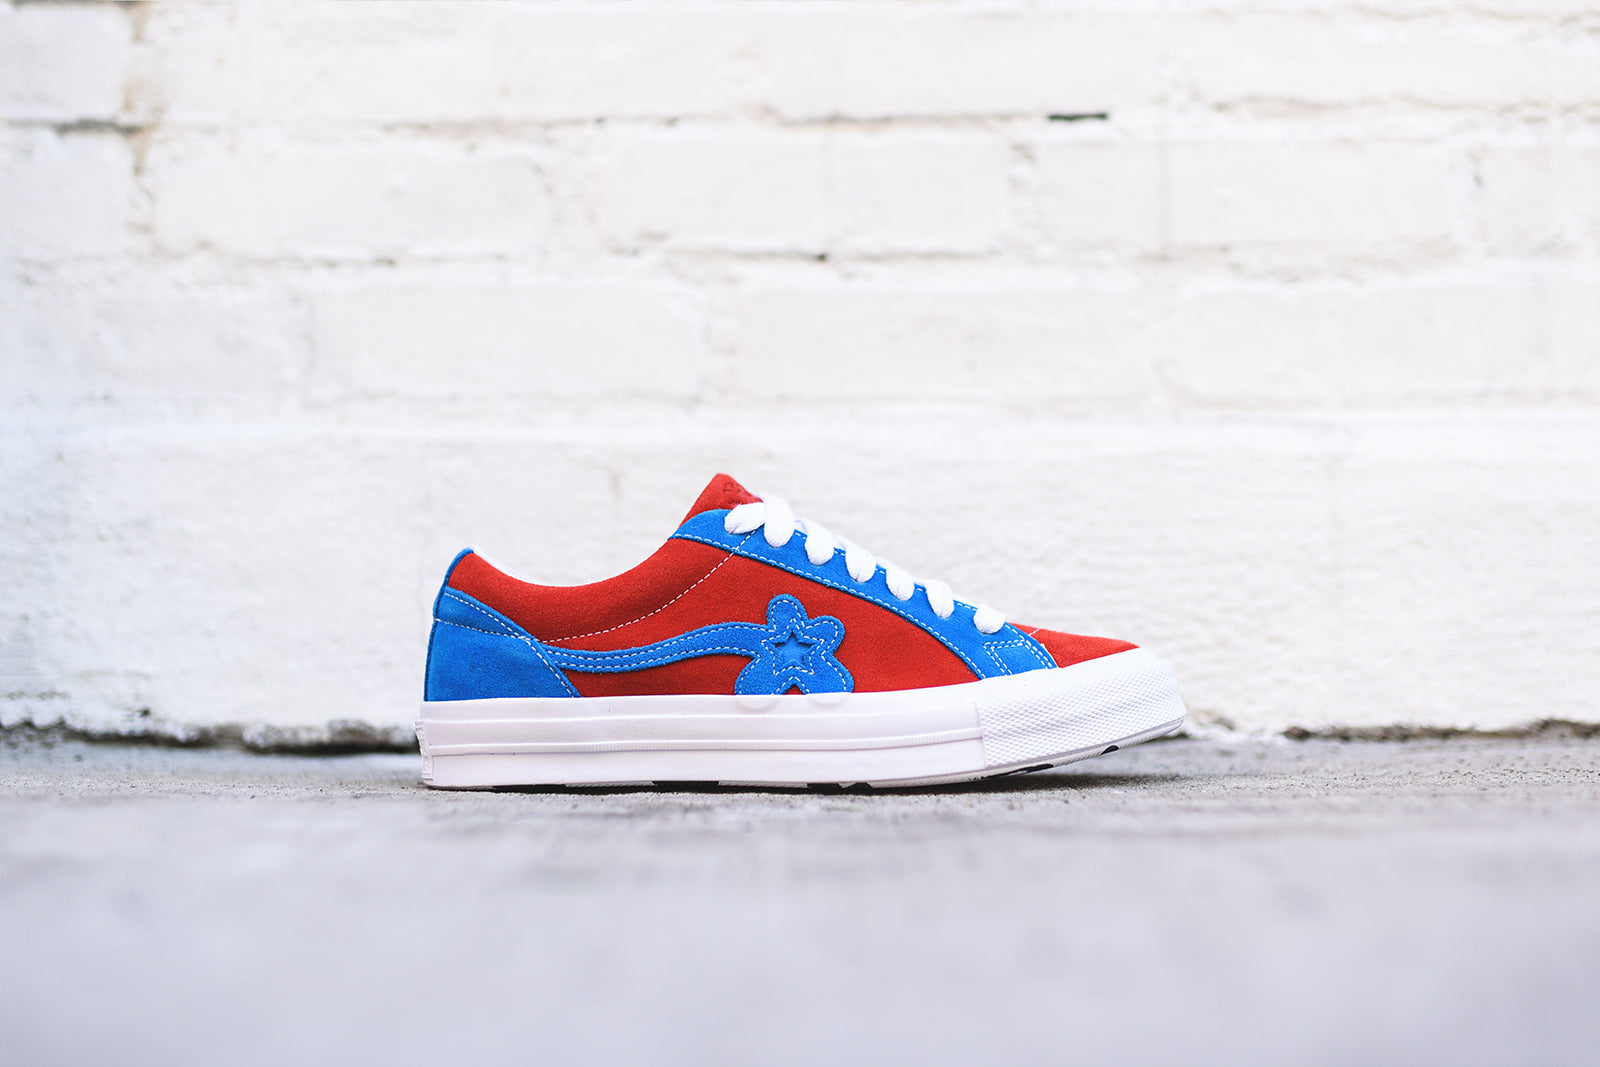 Converse X Golf Le Fleur One Star Pack Kith